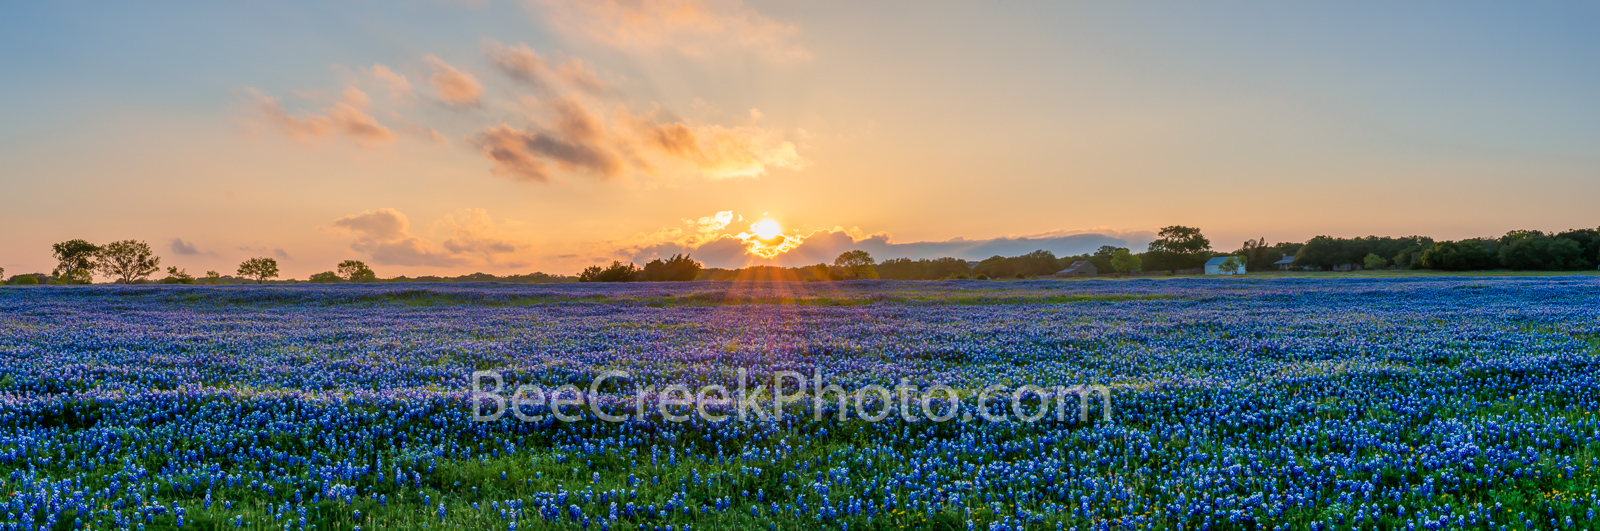 Texas Hill Country Bluebonnets Field Pano -  We capture this wonderful field of Texas bluebonnets in theTexas Hill Country....